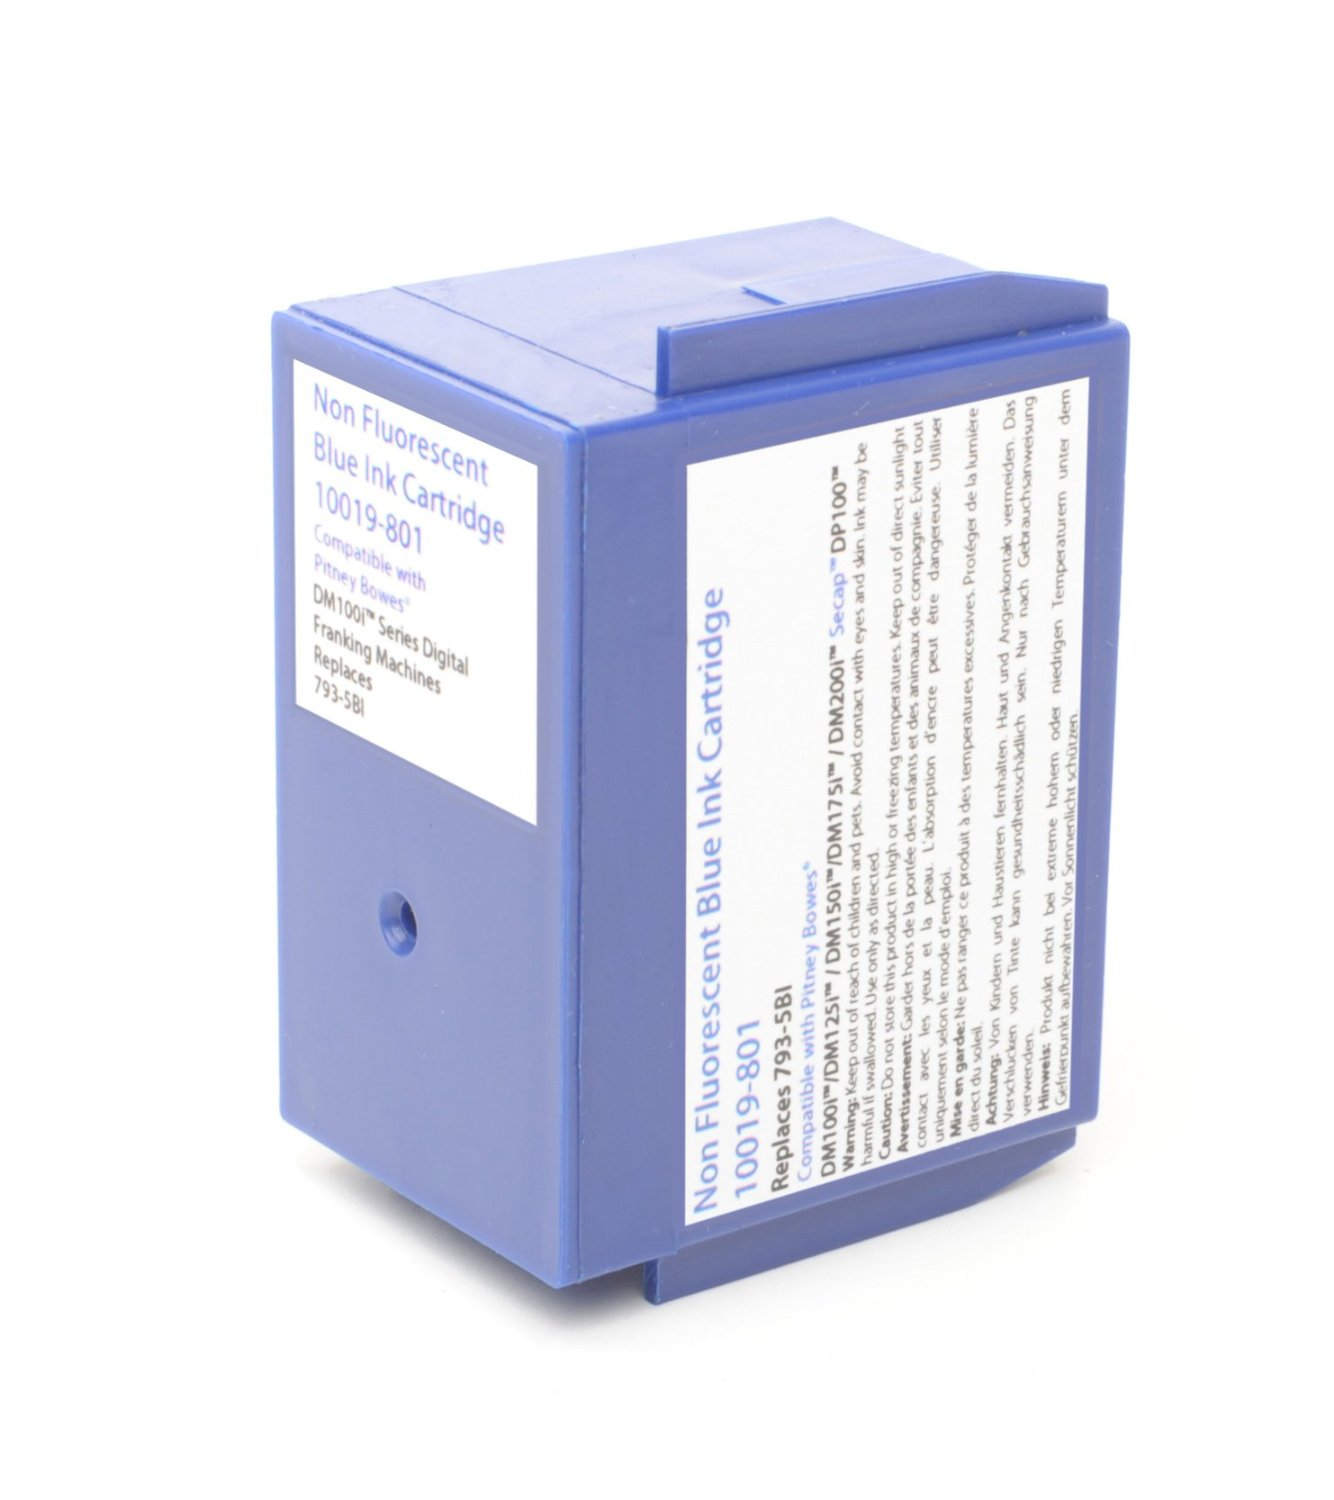 Cheap Blue Franking Machine Cartridge for DM100 | Canon | 10119-801 | Pitney Bowes